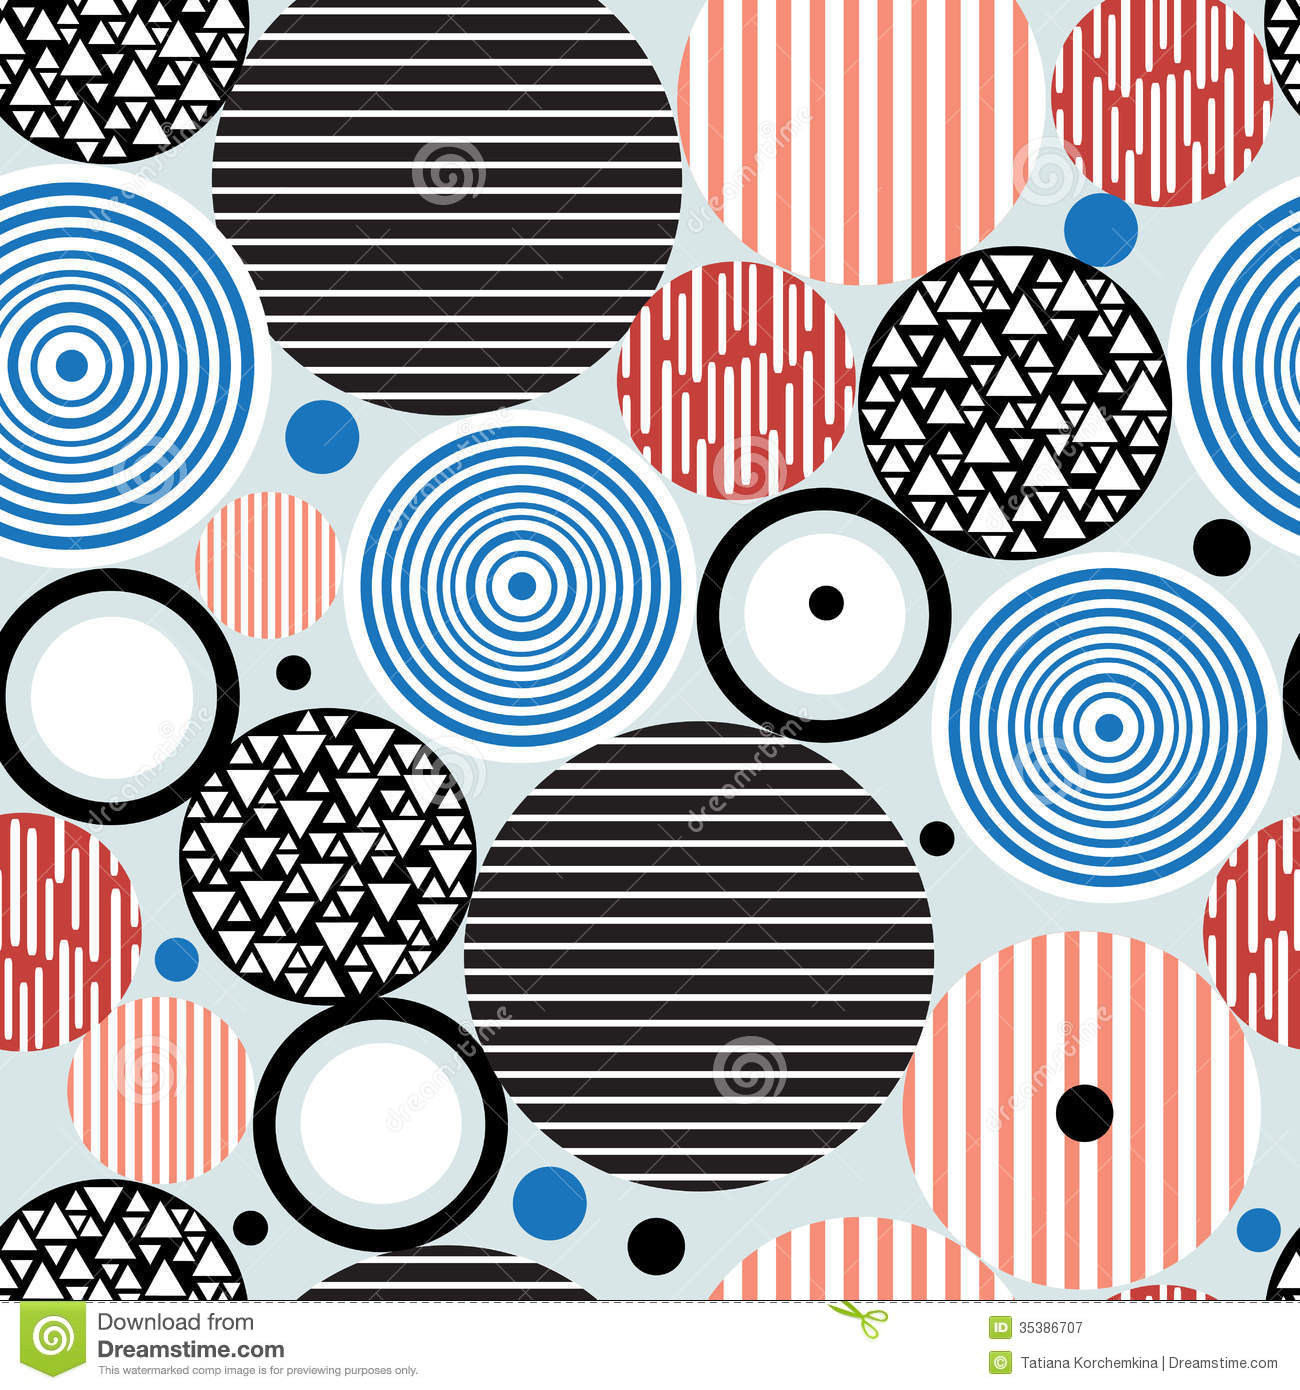 Abstract Geometric Pattern Of Circles Royalty Free Stock